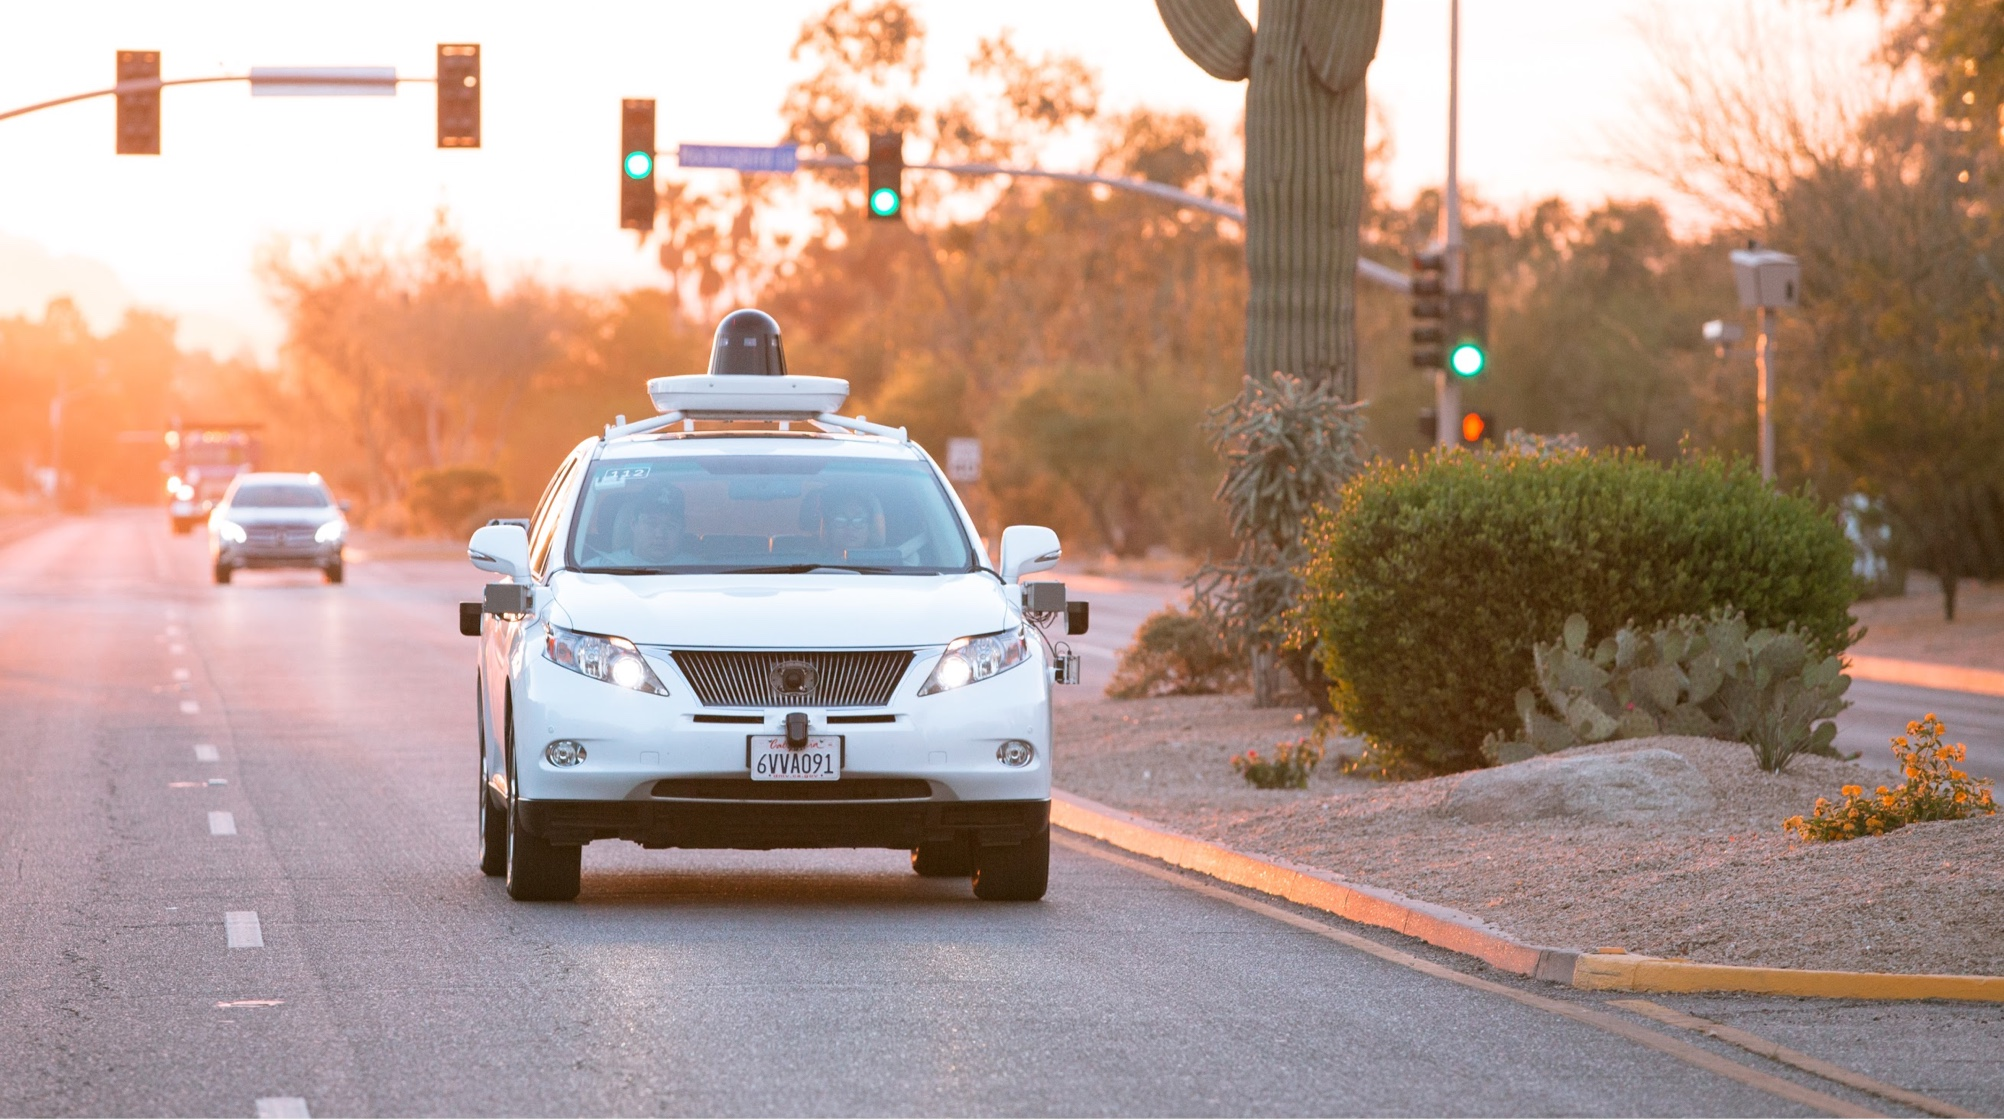 Malfunction Fears May Haunt Self-Driving Cars